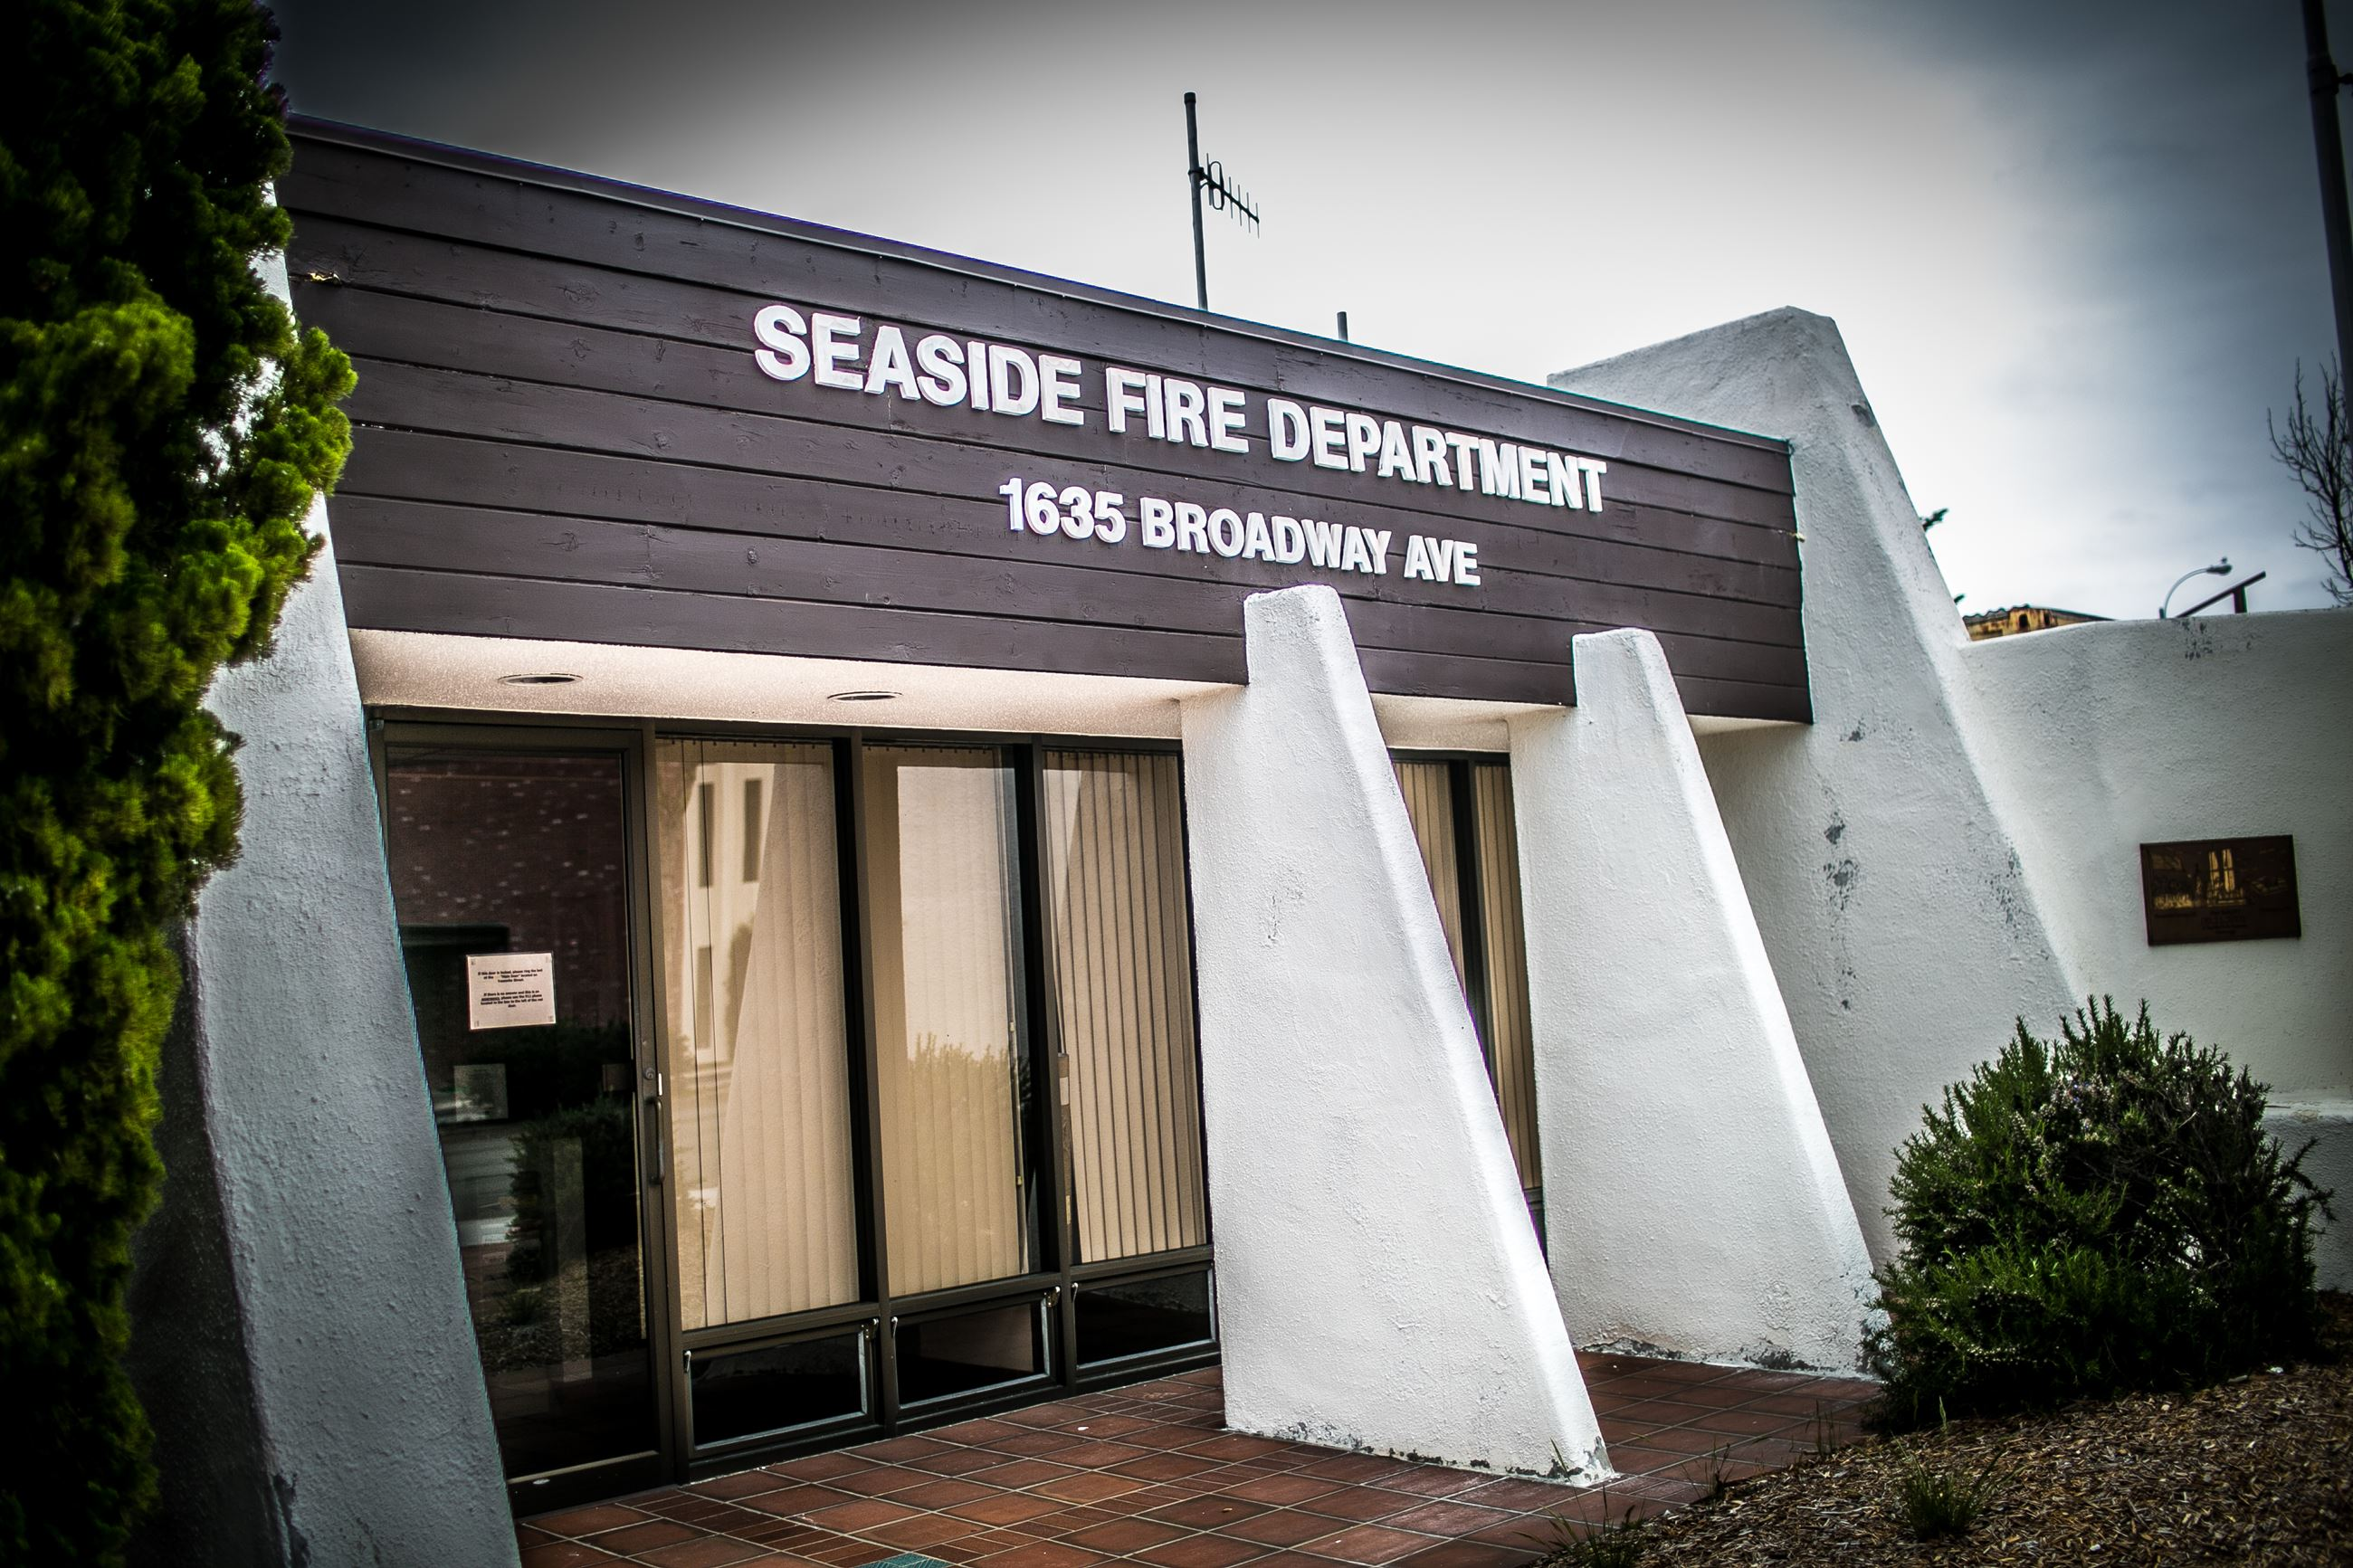 Front exterior of the Seaside fire Department building